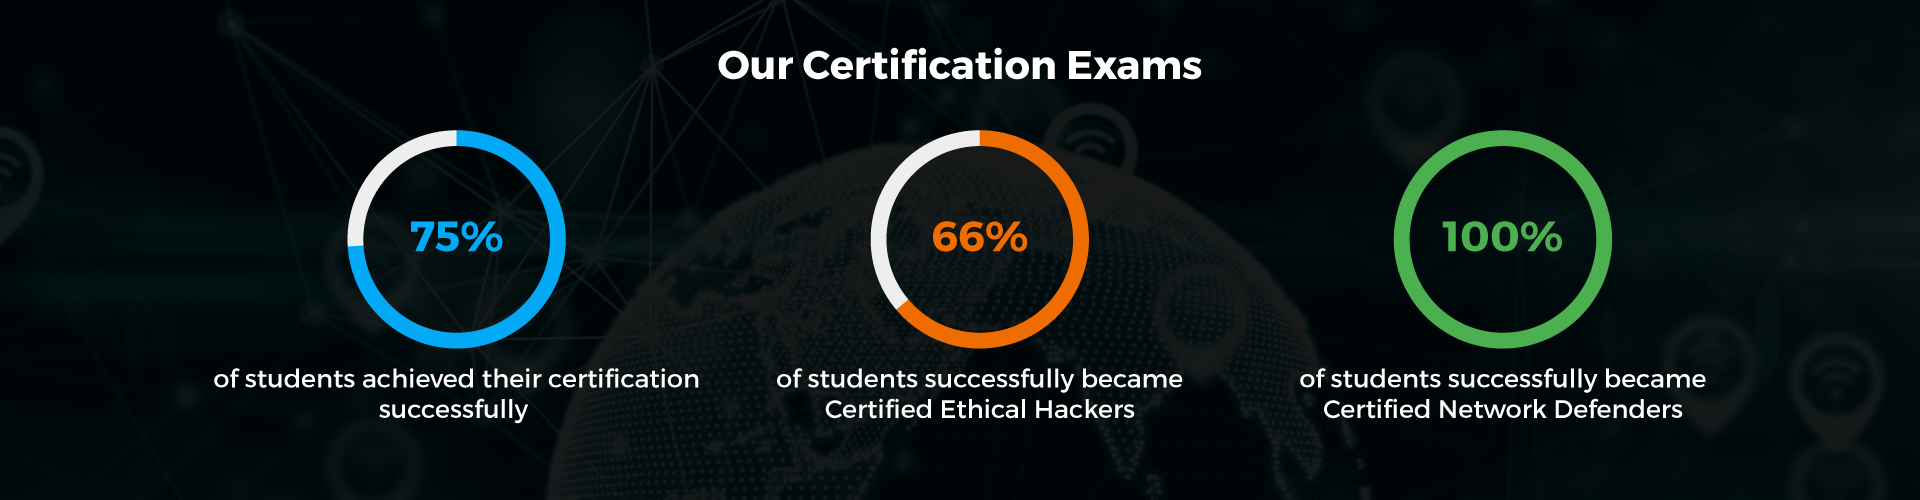 Our-Certification-Exams